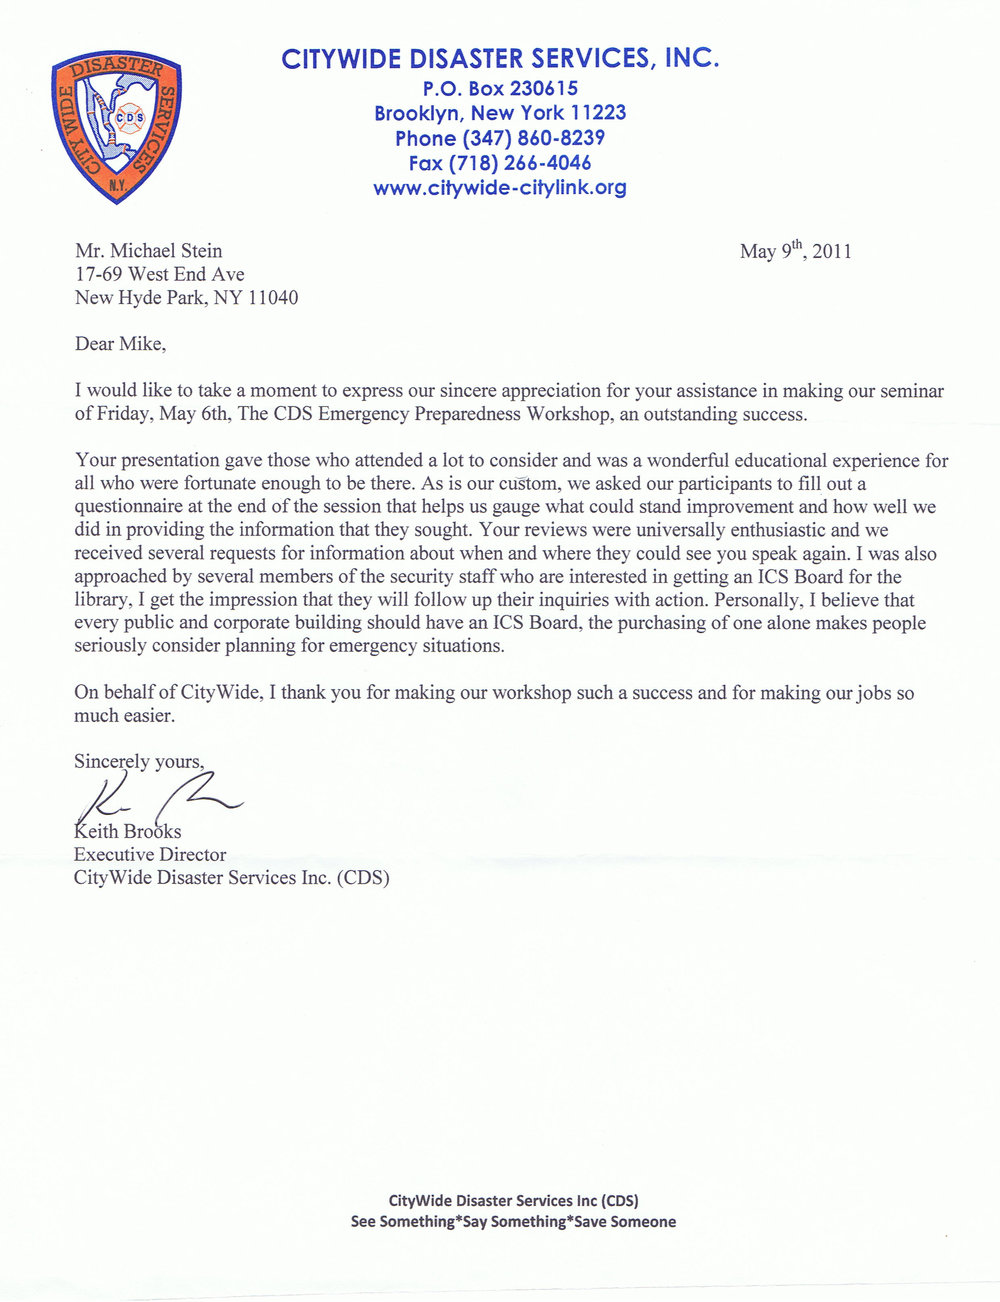 City Wide Disaster Appreciation Letter 2011.jpg